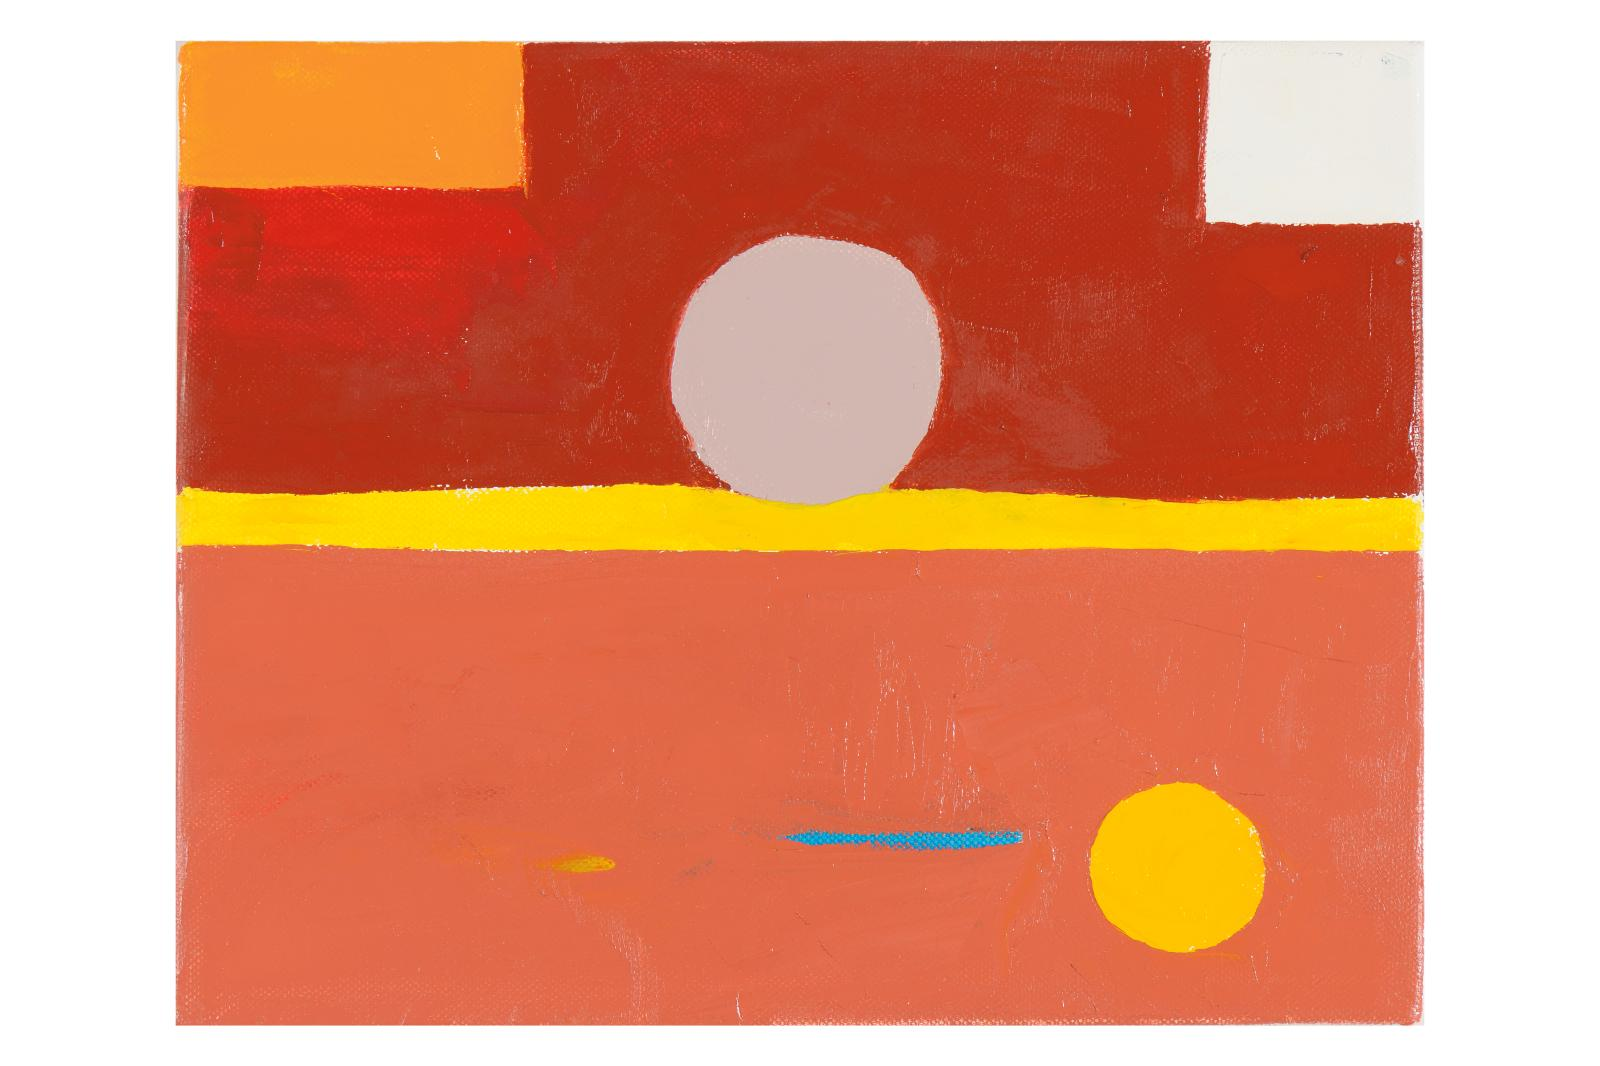 17 Etel Adnan, Untitled, 2010, collection Sfeir-Semler Gallery, Beyrouth/Hambourg.